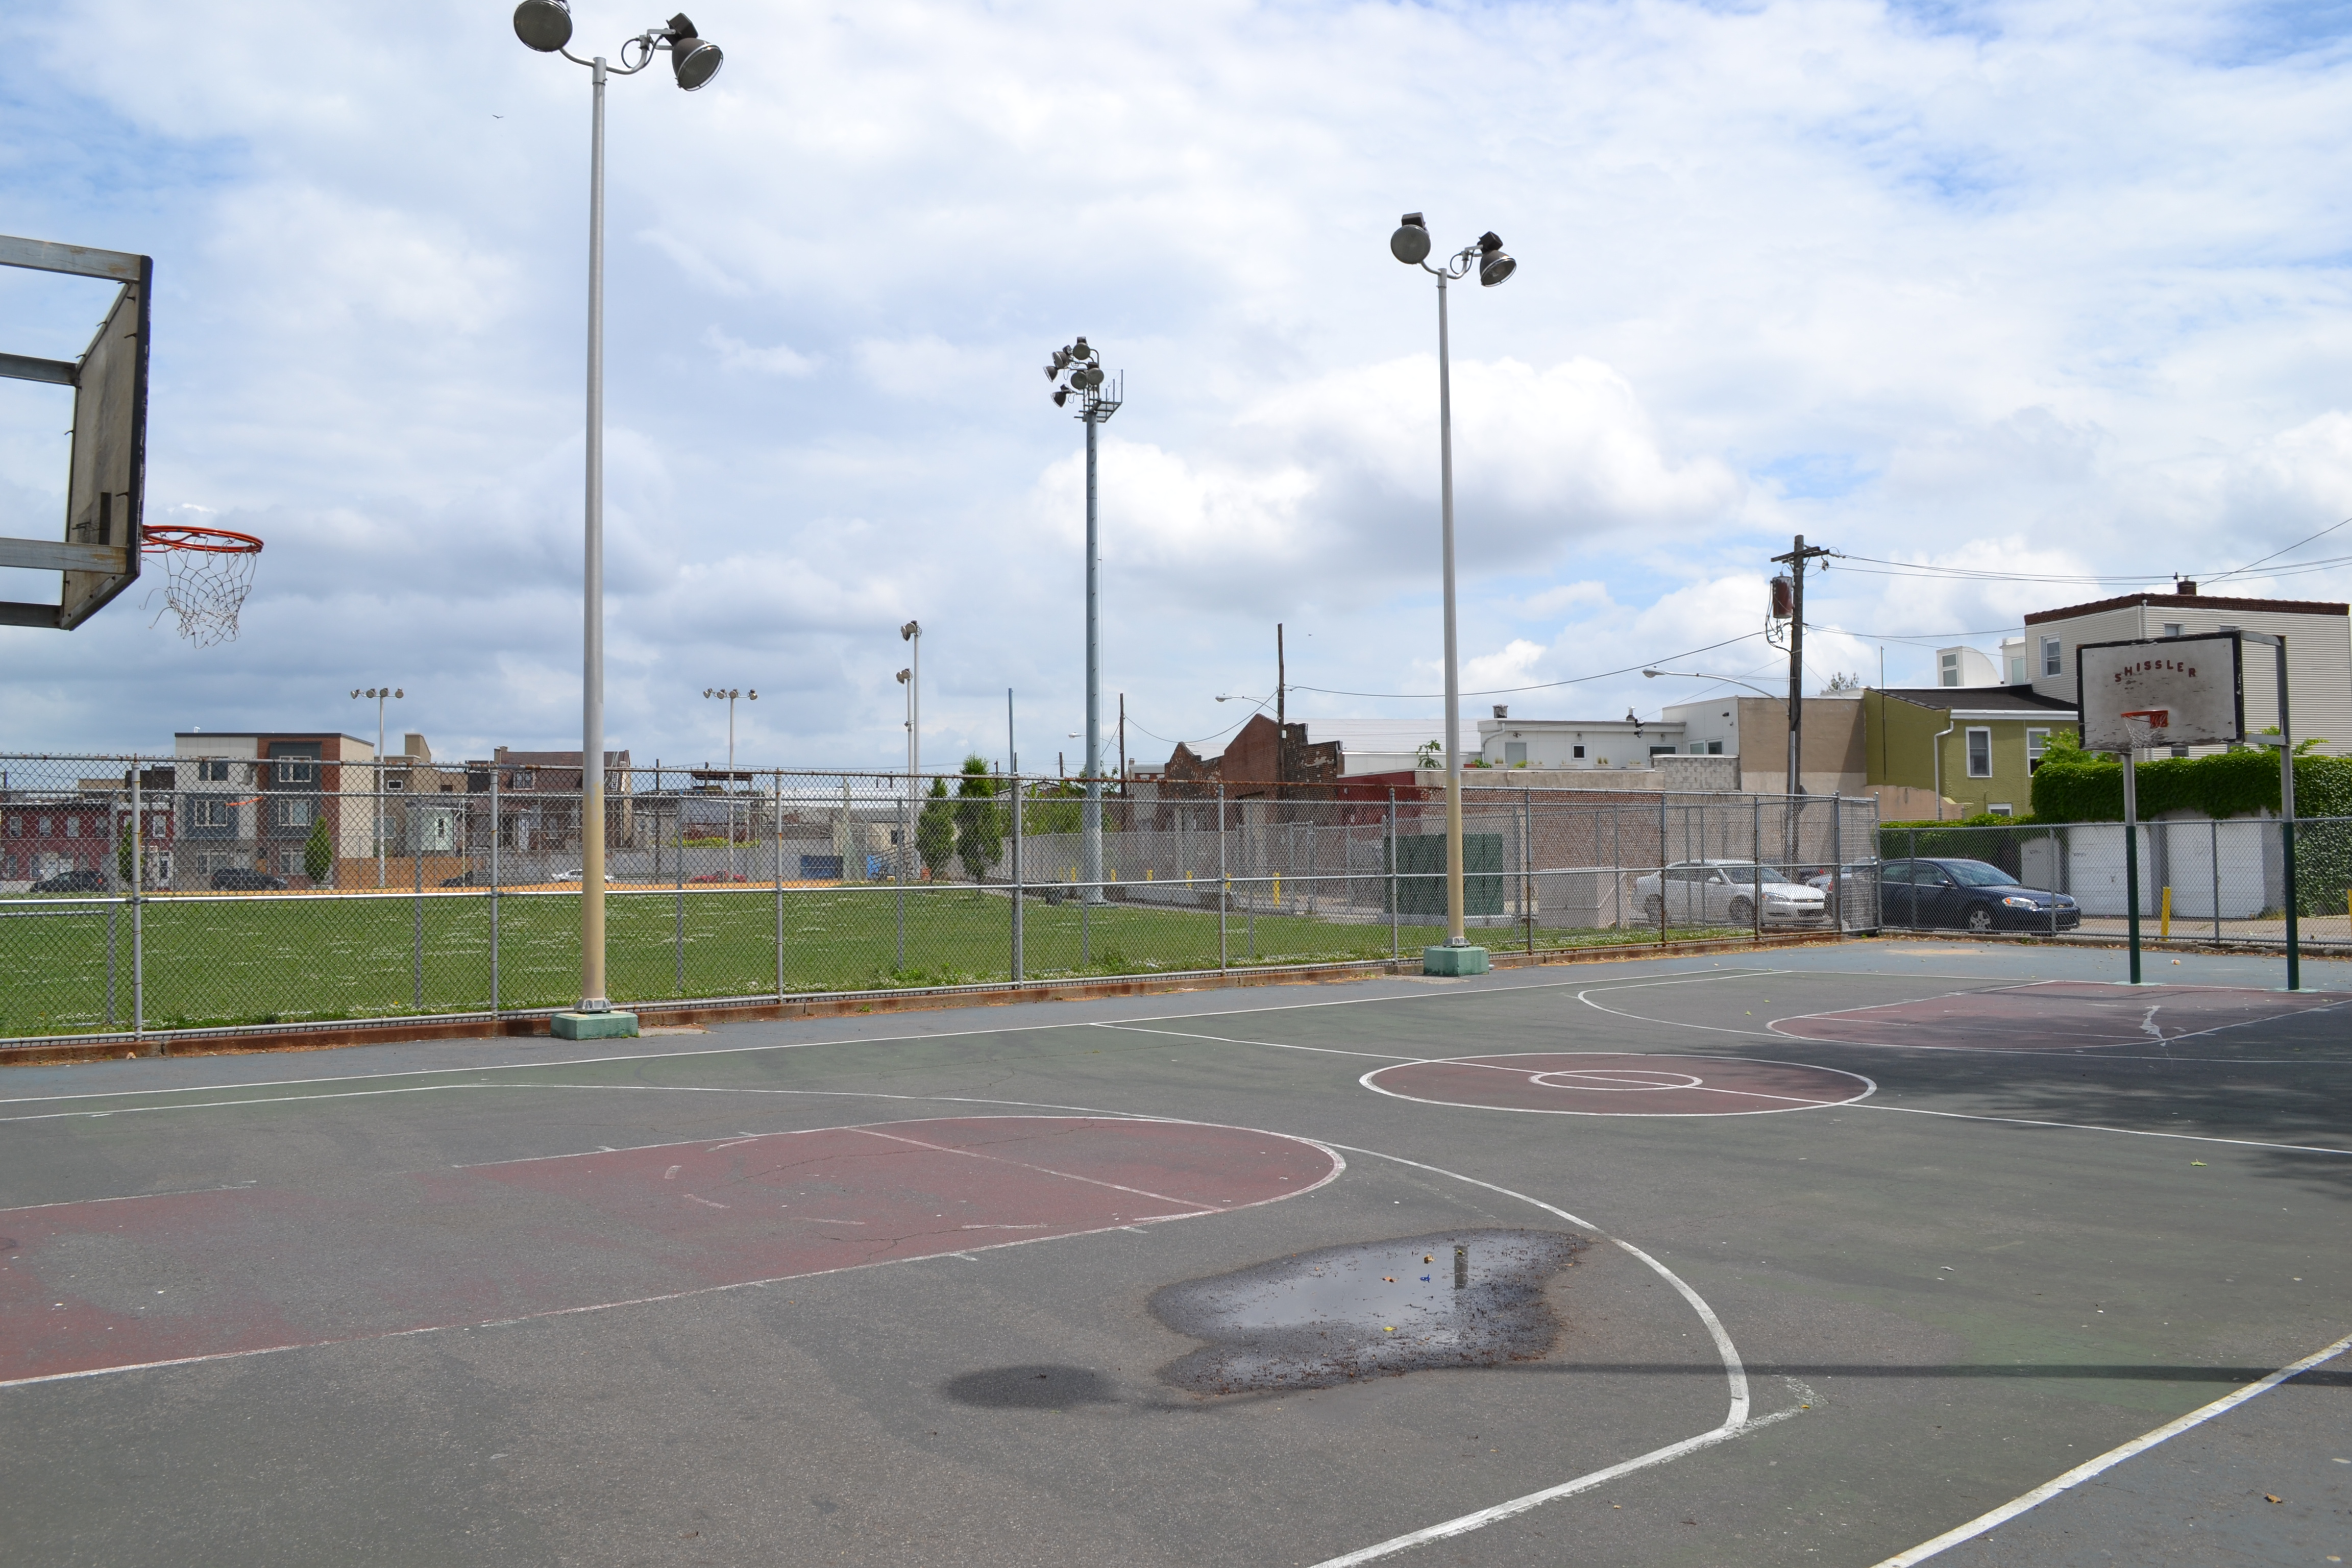 Up next, the Shissler Rec Center basketball court will be repaved and a stormwater management system will be installed beneath the pavement